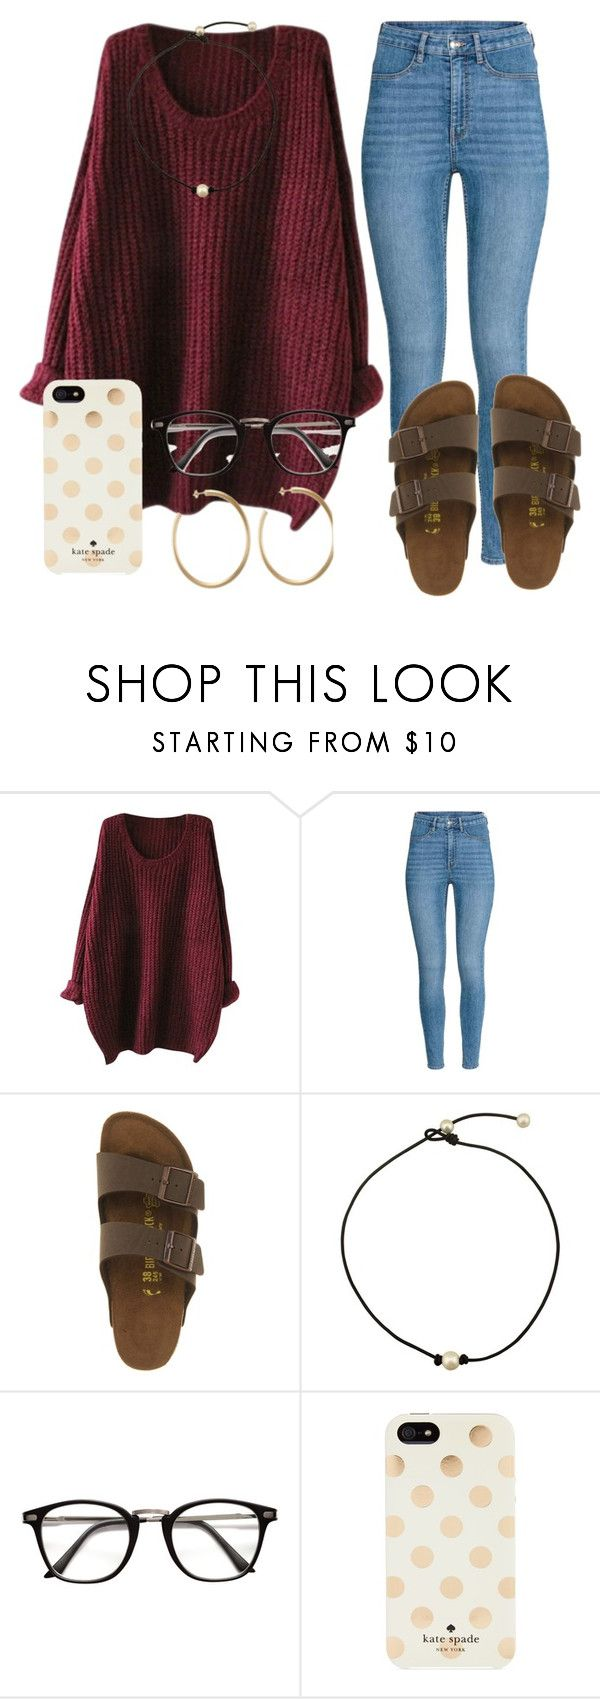 """Untitled #42"" by jiggle207 on Polyvore featuring Birkenstock and Kate Spade"